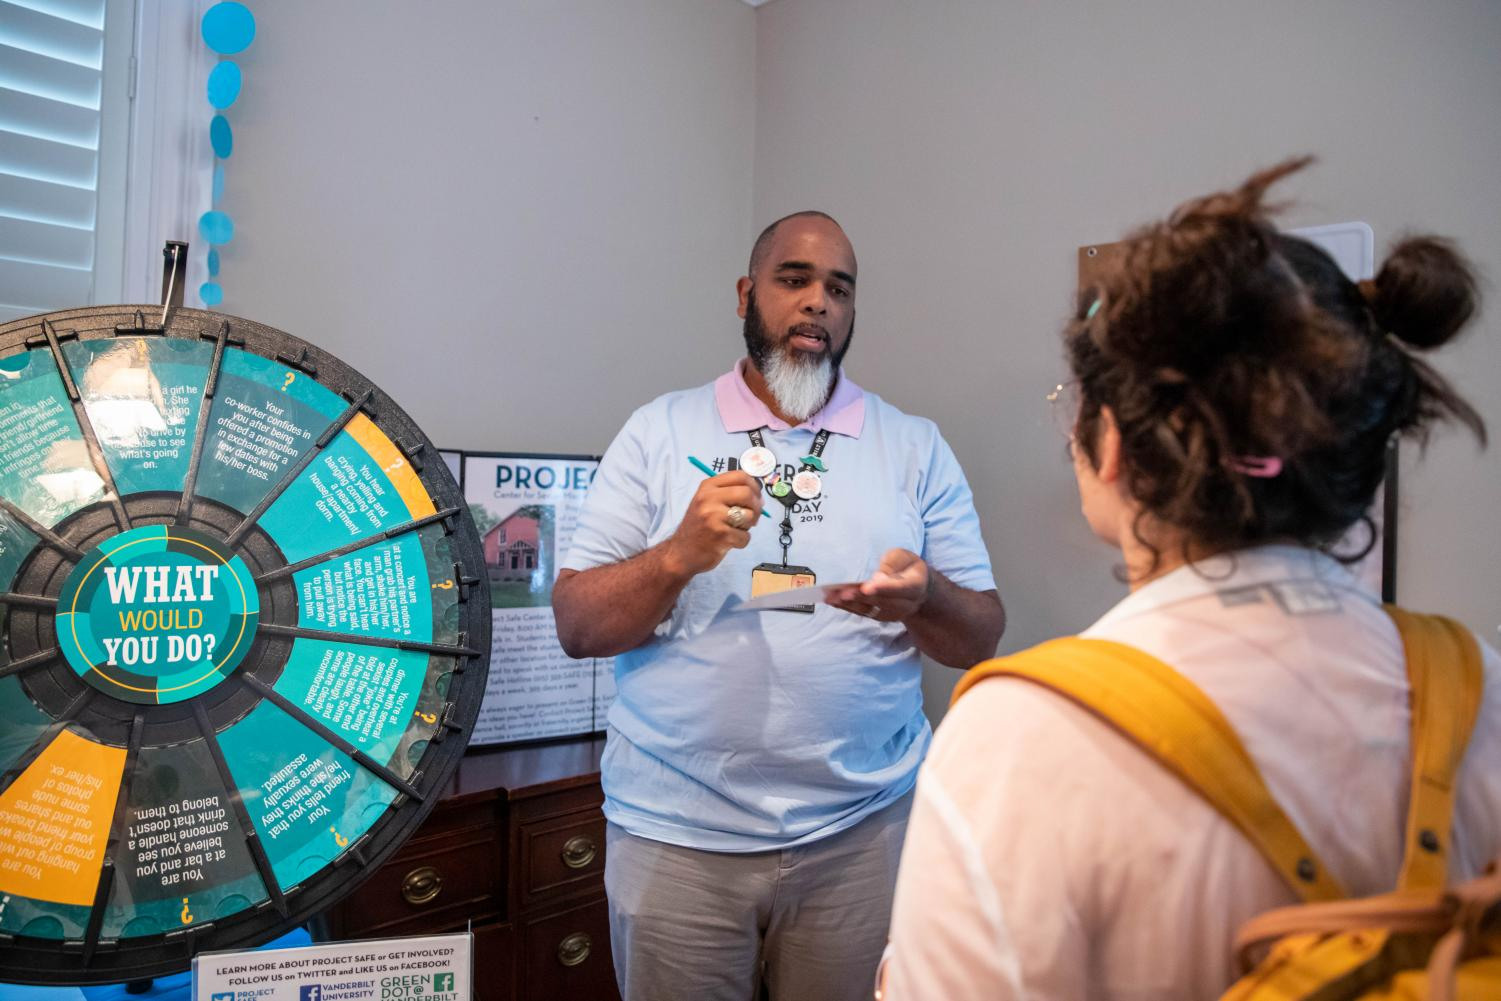 Students+spin+the+%22What+Would+You+Do%3F%22+wheel+and+learn+about+the+resources+at+Project+Safe+on+the+2019+Diverse+%27Dores+Day.+%28Photo+by+Emily+Gon%C3%A7alves%29